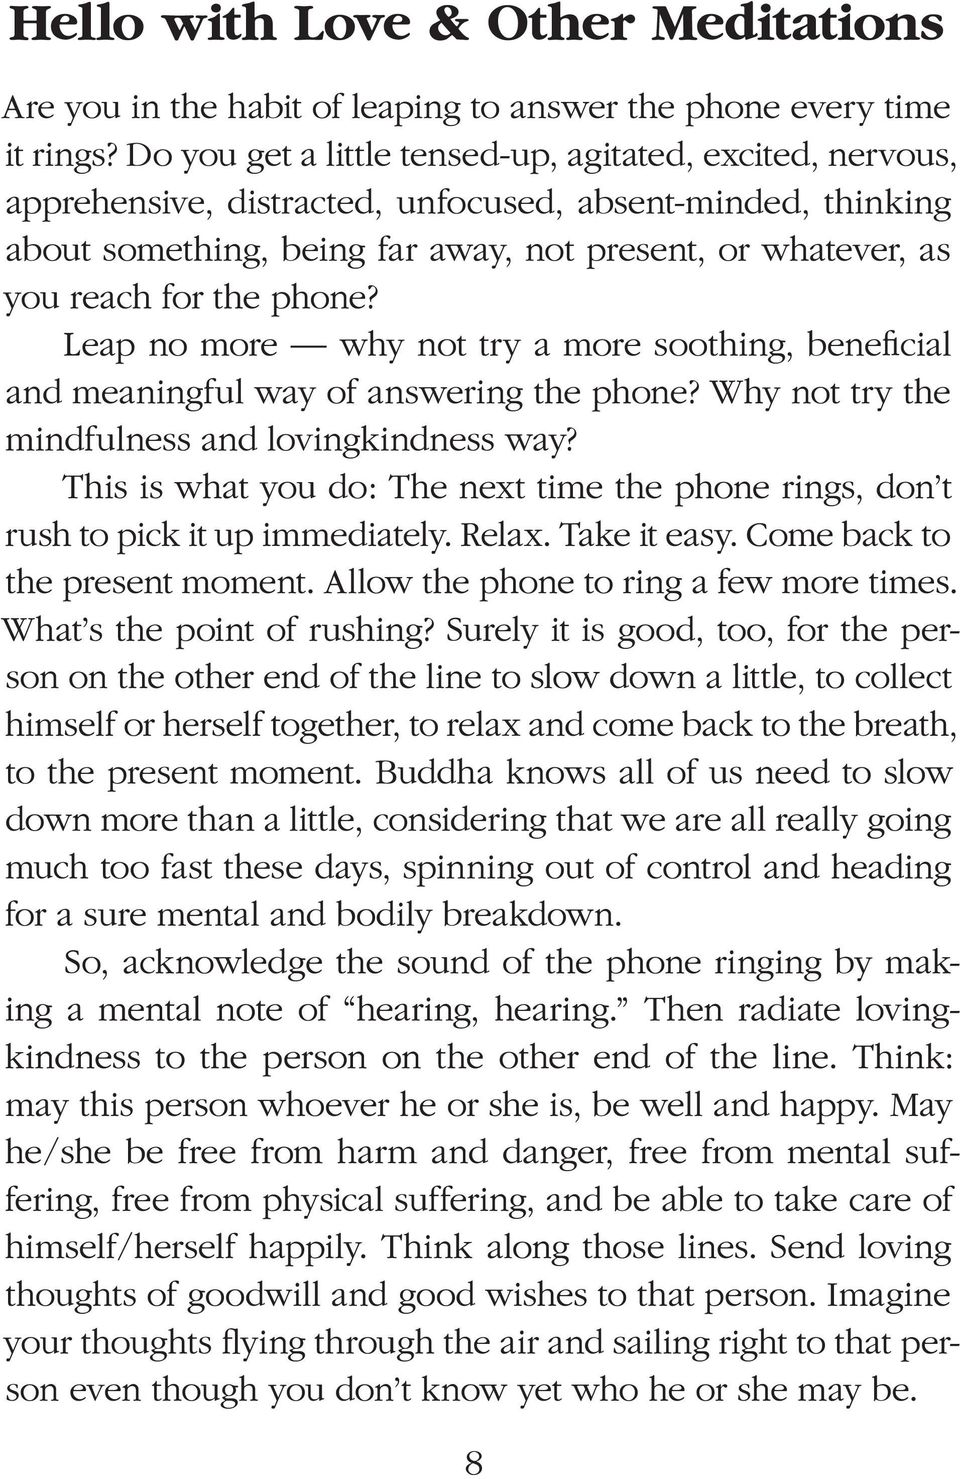 Be aware as you stretch out your hand, as it touches the phone, and as it (the hand) lifts it (the phone) to